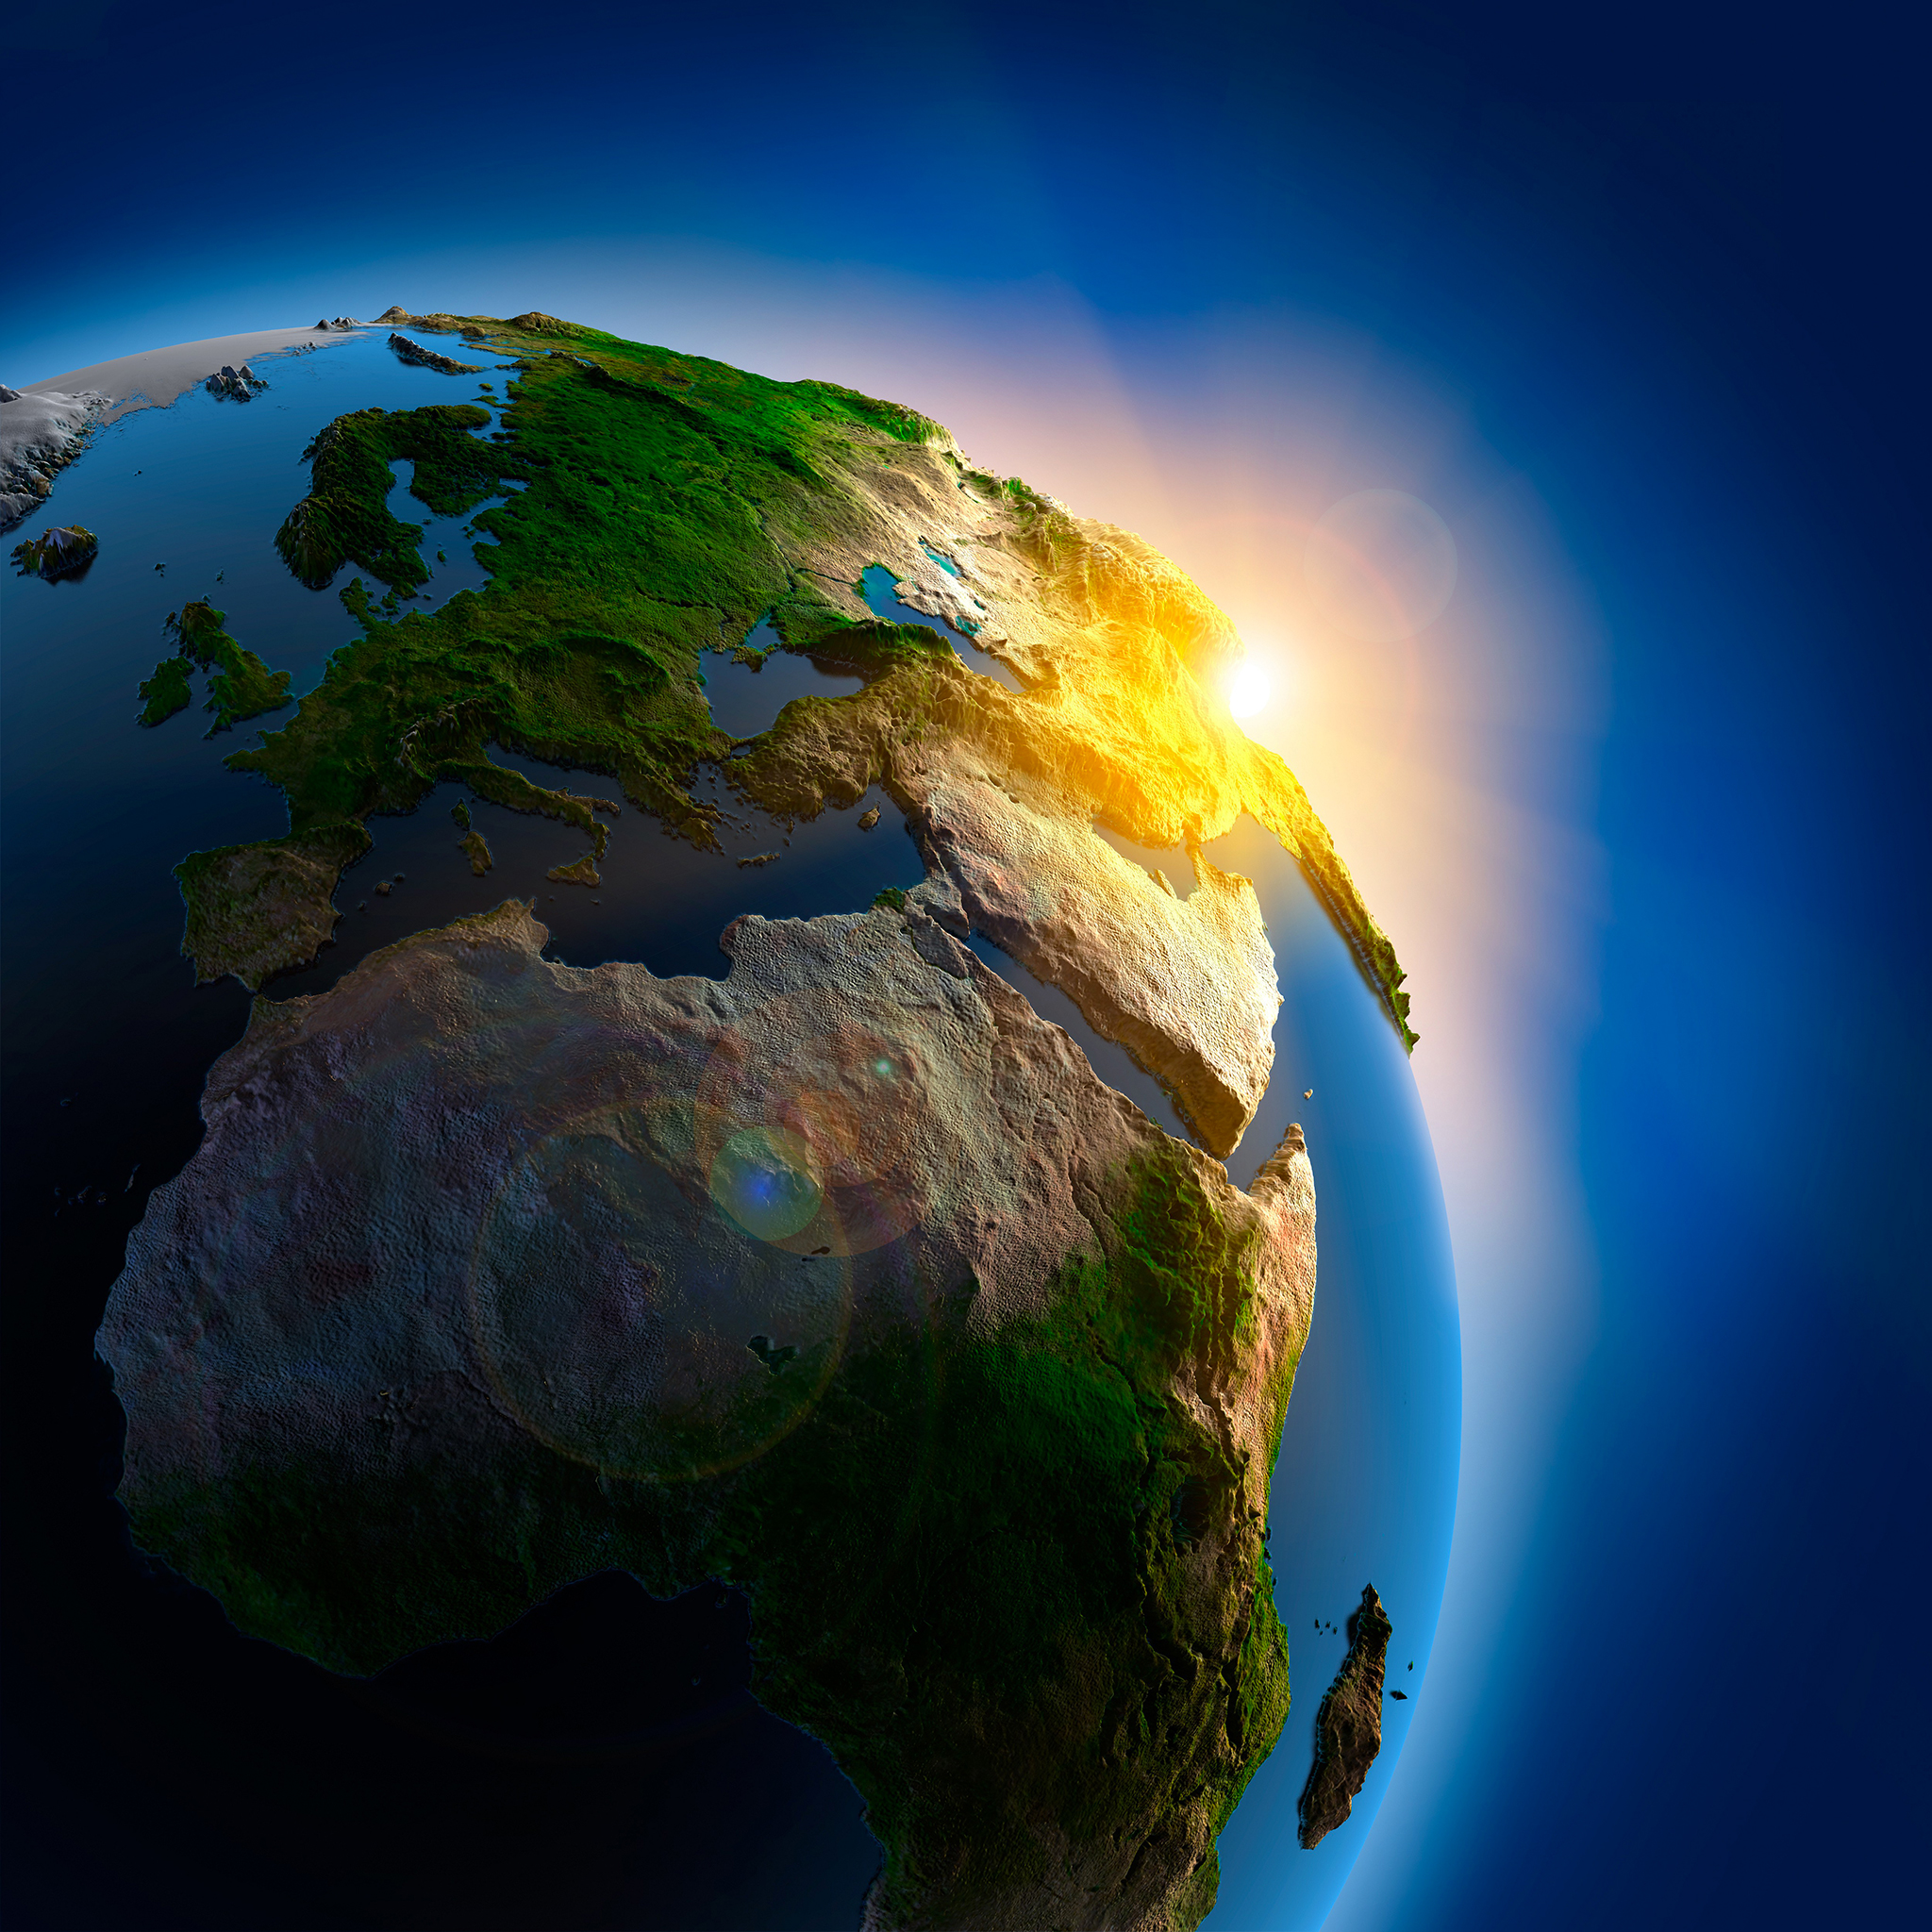 Planet Earth Light 3Wallpapers iPad Retina Planet Earth Light   iPad Retina